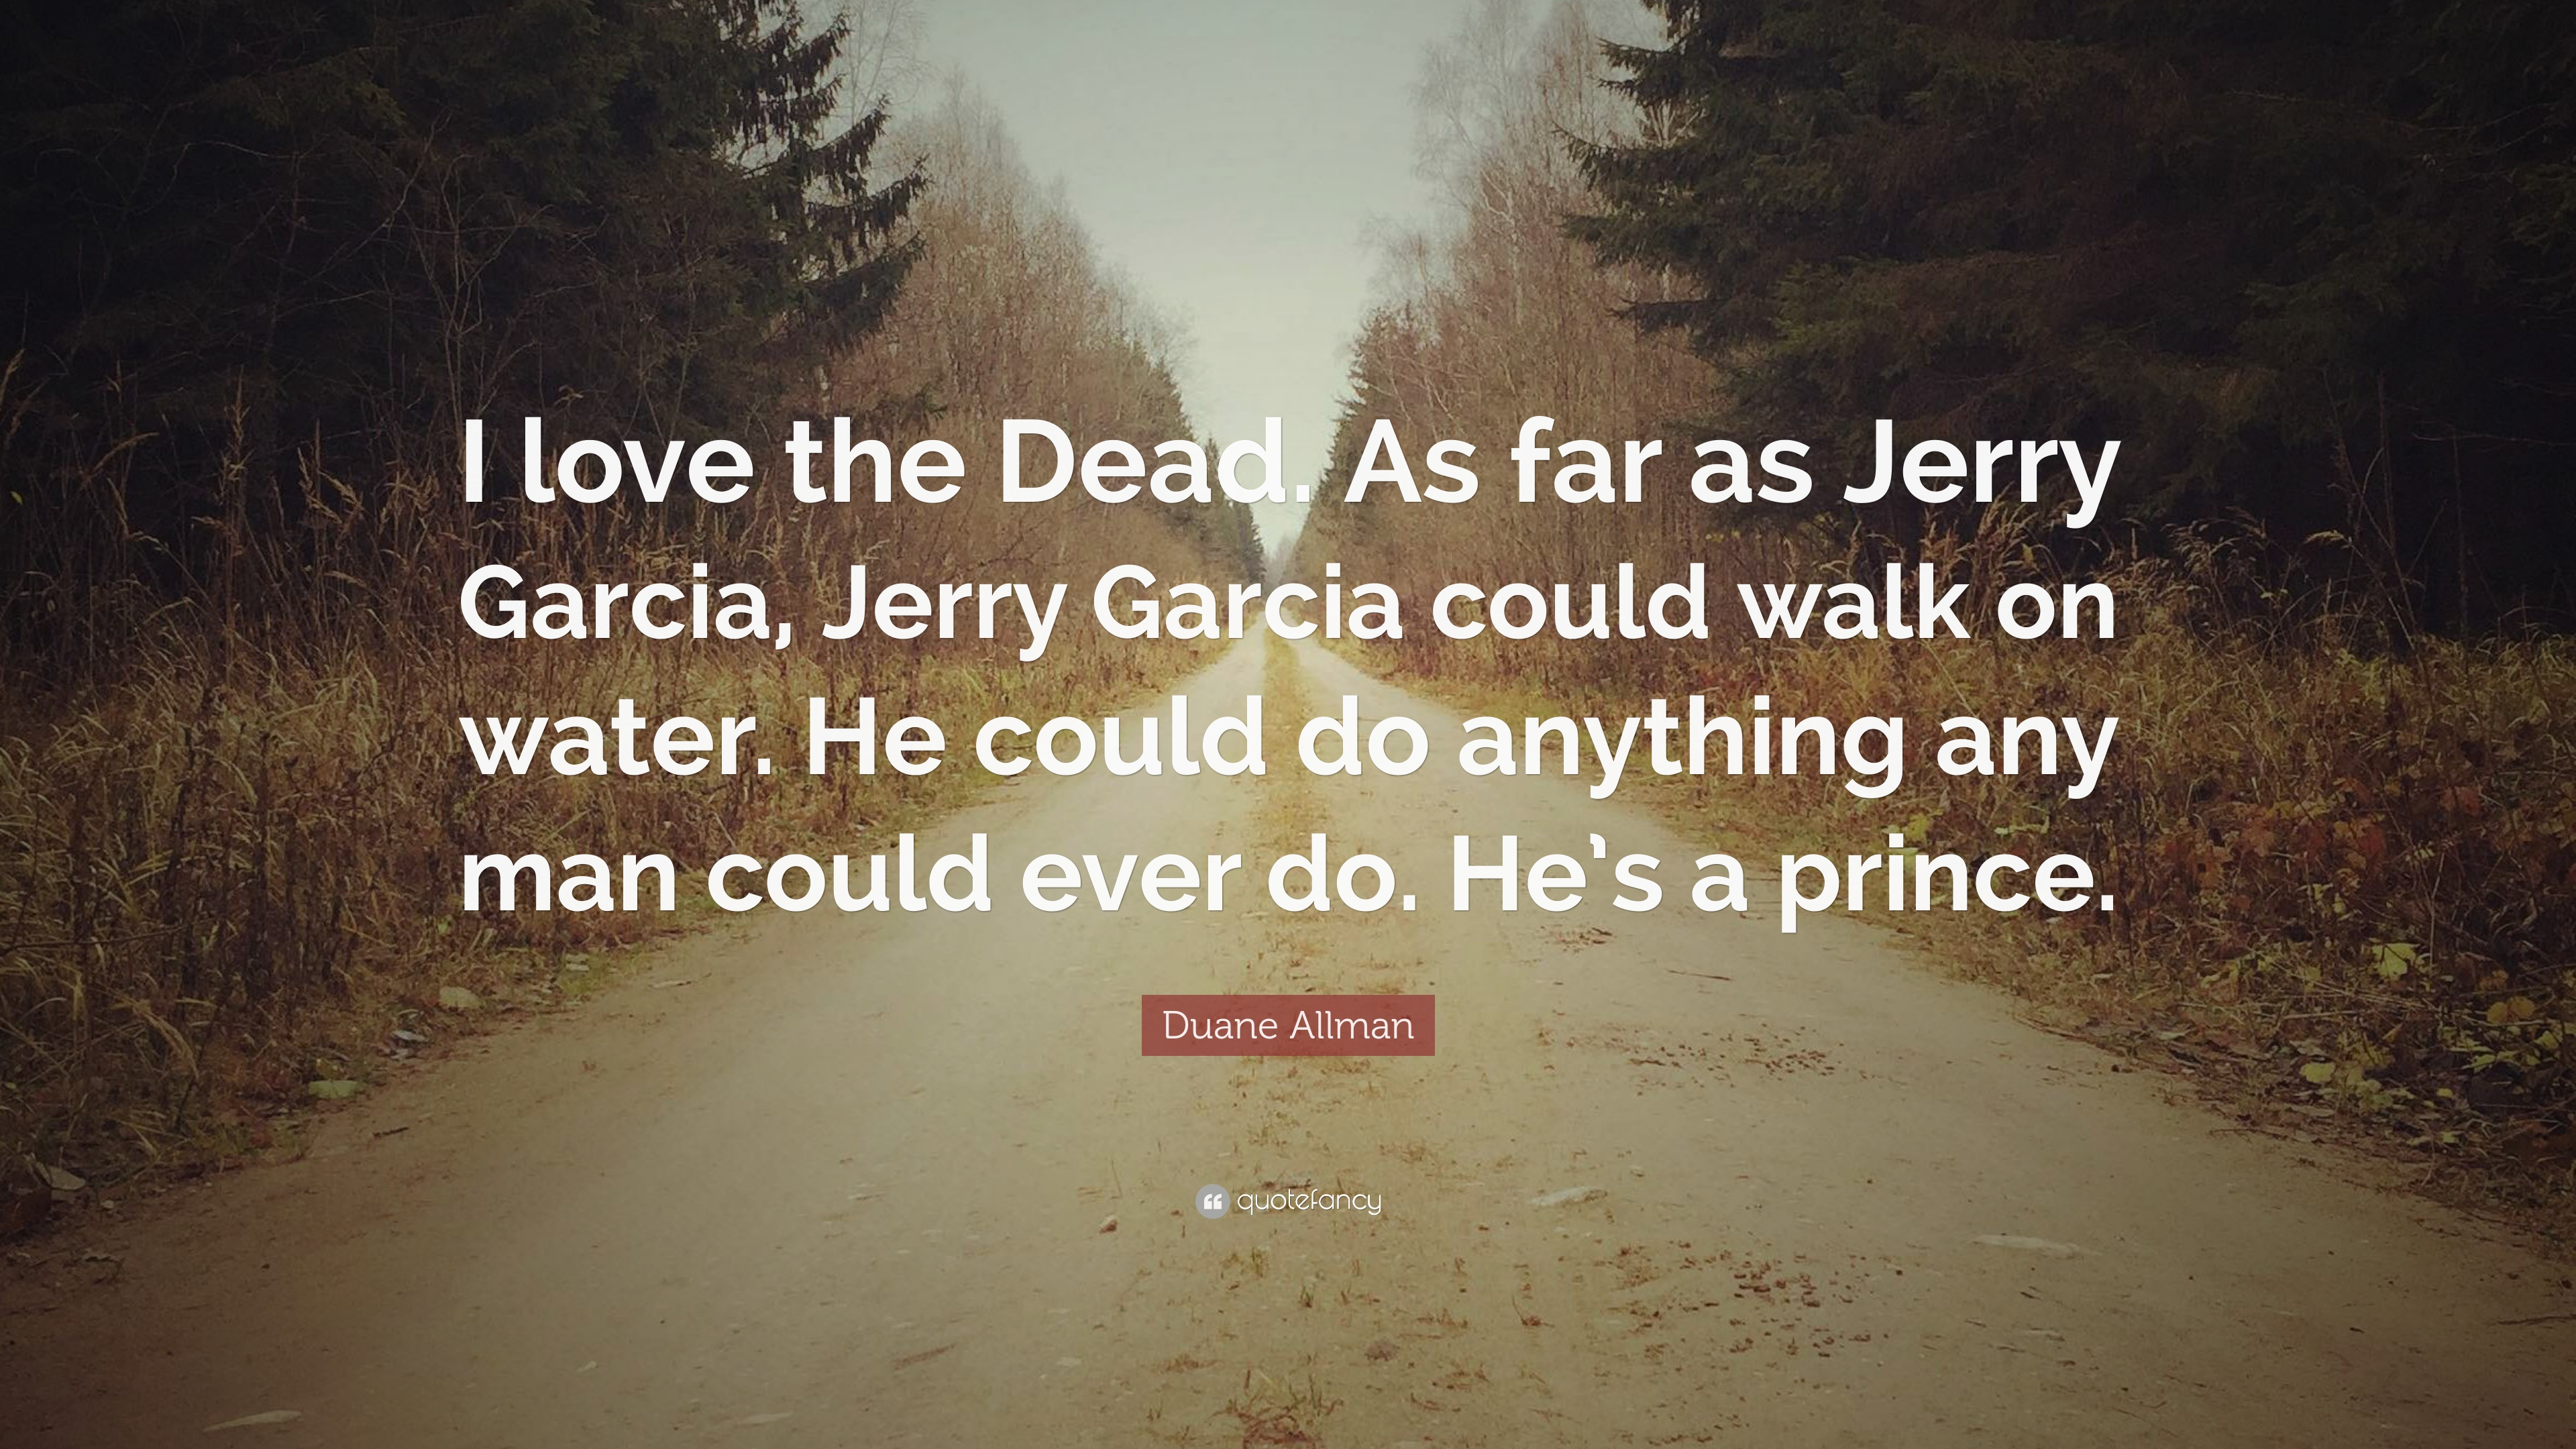 "Duane Allman Quote ""I love the Dead As far as Jerry Garcia"